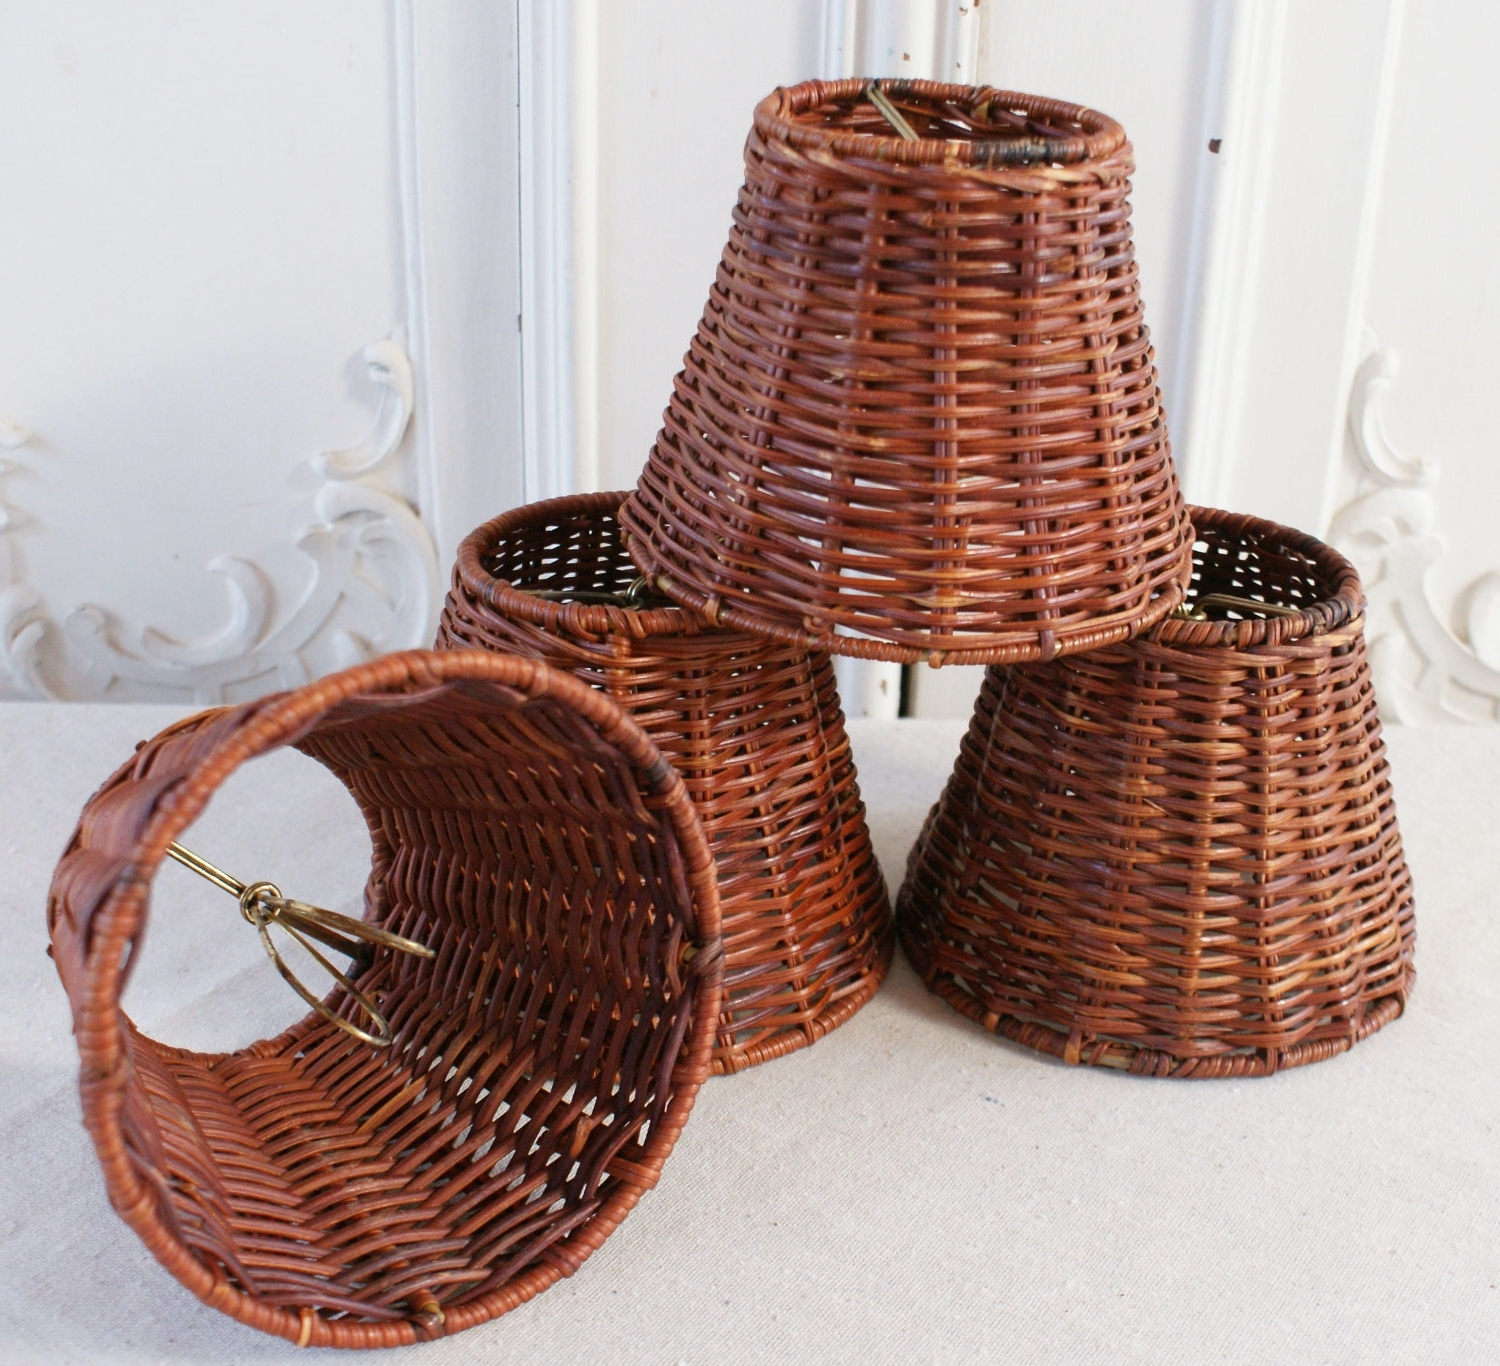 Chandelier Lamp Shades Clip On For 2017 Chandeliers Design : Marvelous Wicker Chandelier With Lamp Shades (View 4 of 15)